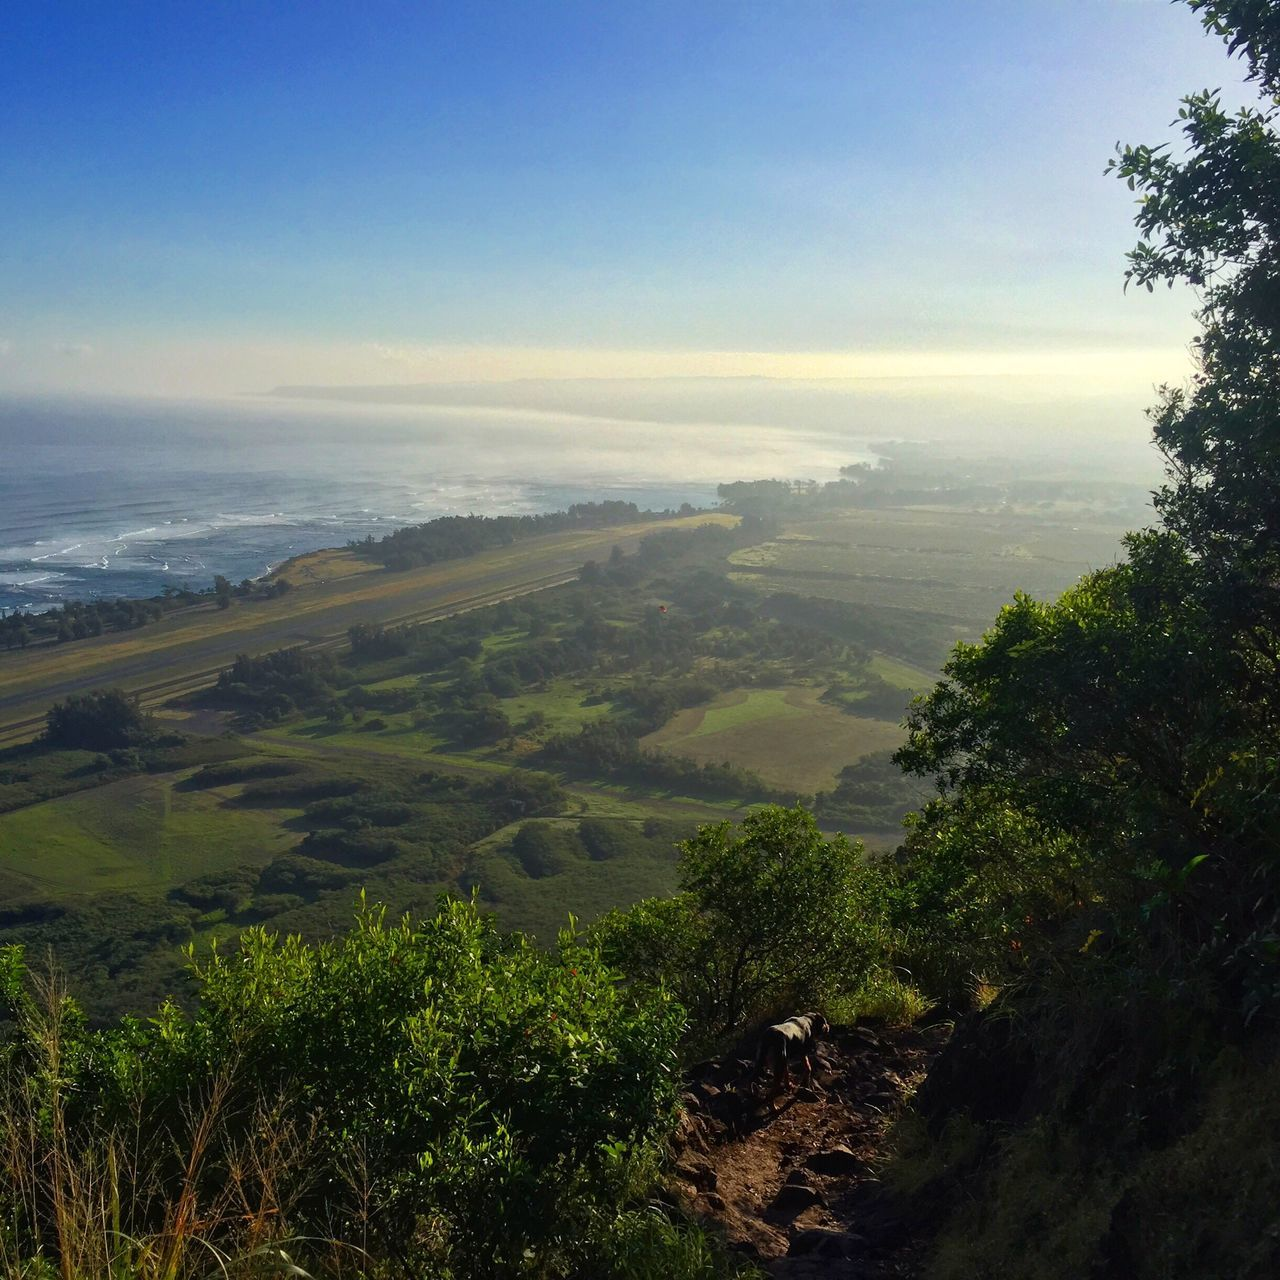 Luckywelivehi Hawaiihikes Beautyallaround Naturenailedit Sunrise Hawaii Chasing Dreams CaptureTheMoment Showcase: March Showcase: March 2016 Northshore808 Northshoreoahu Livingthedream Livealoha Thisishome BeGrateful Noworries